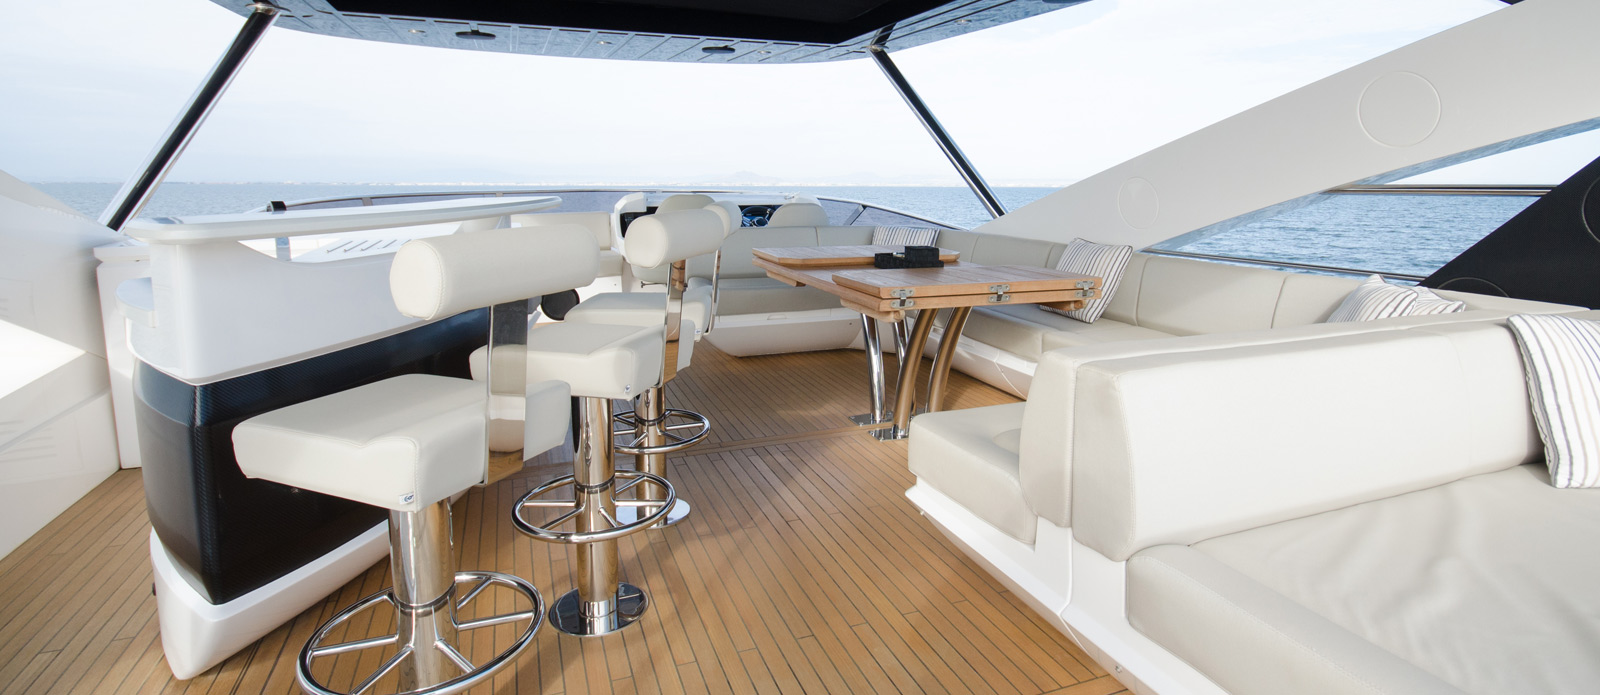 Sunseeker 86 Yacht - Bar